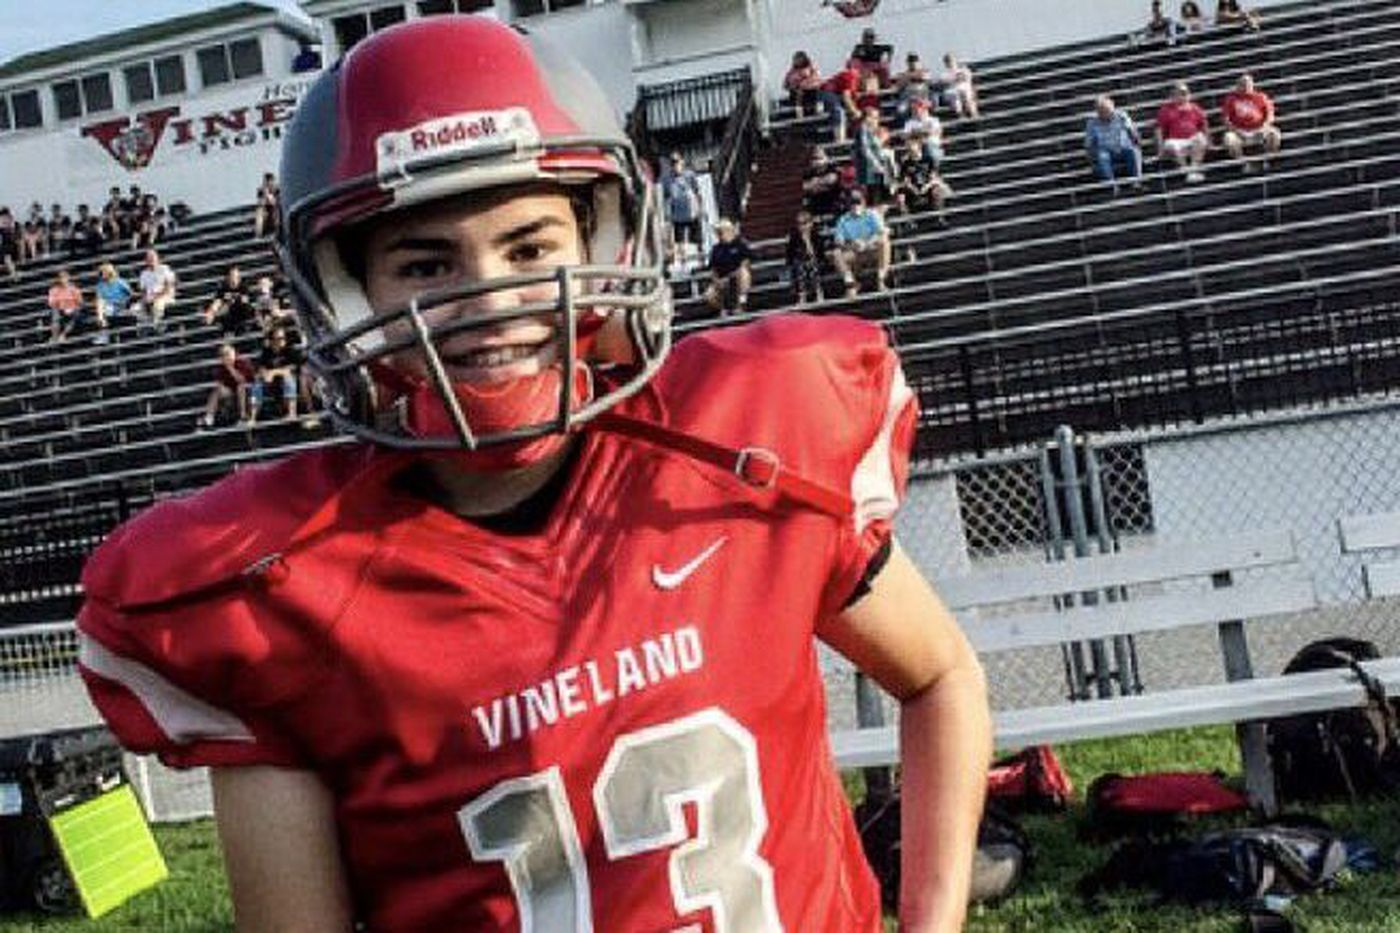 Vineland's Carli Kling becomes first girl to score in school history